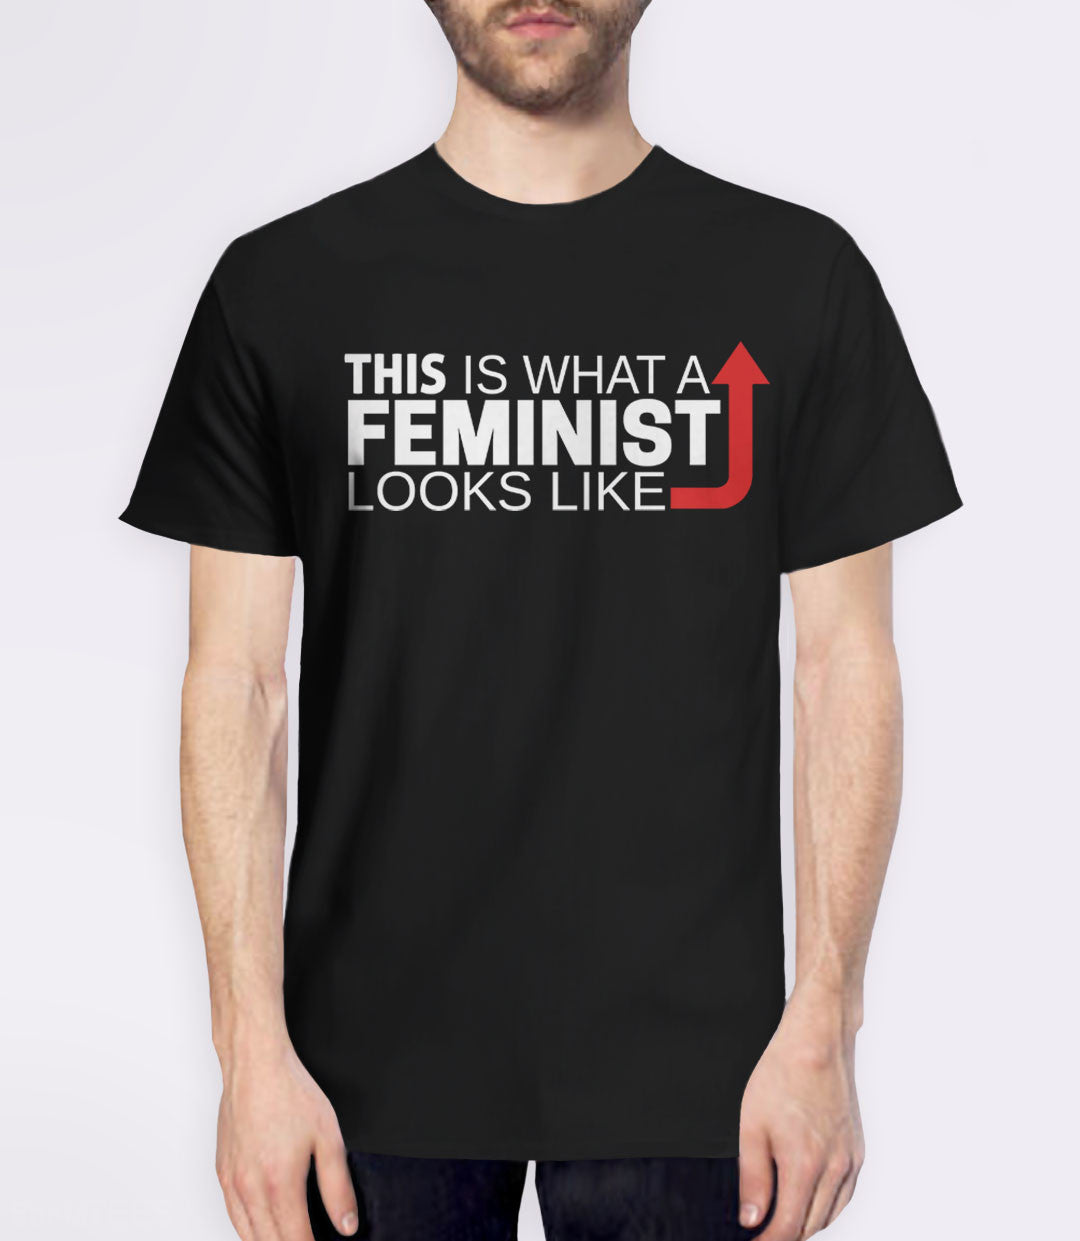 This is what a feminist looks like black t-shirt - mens tee